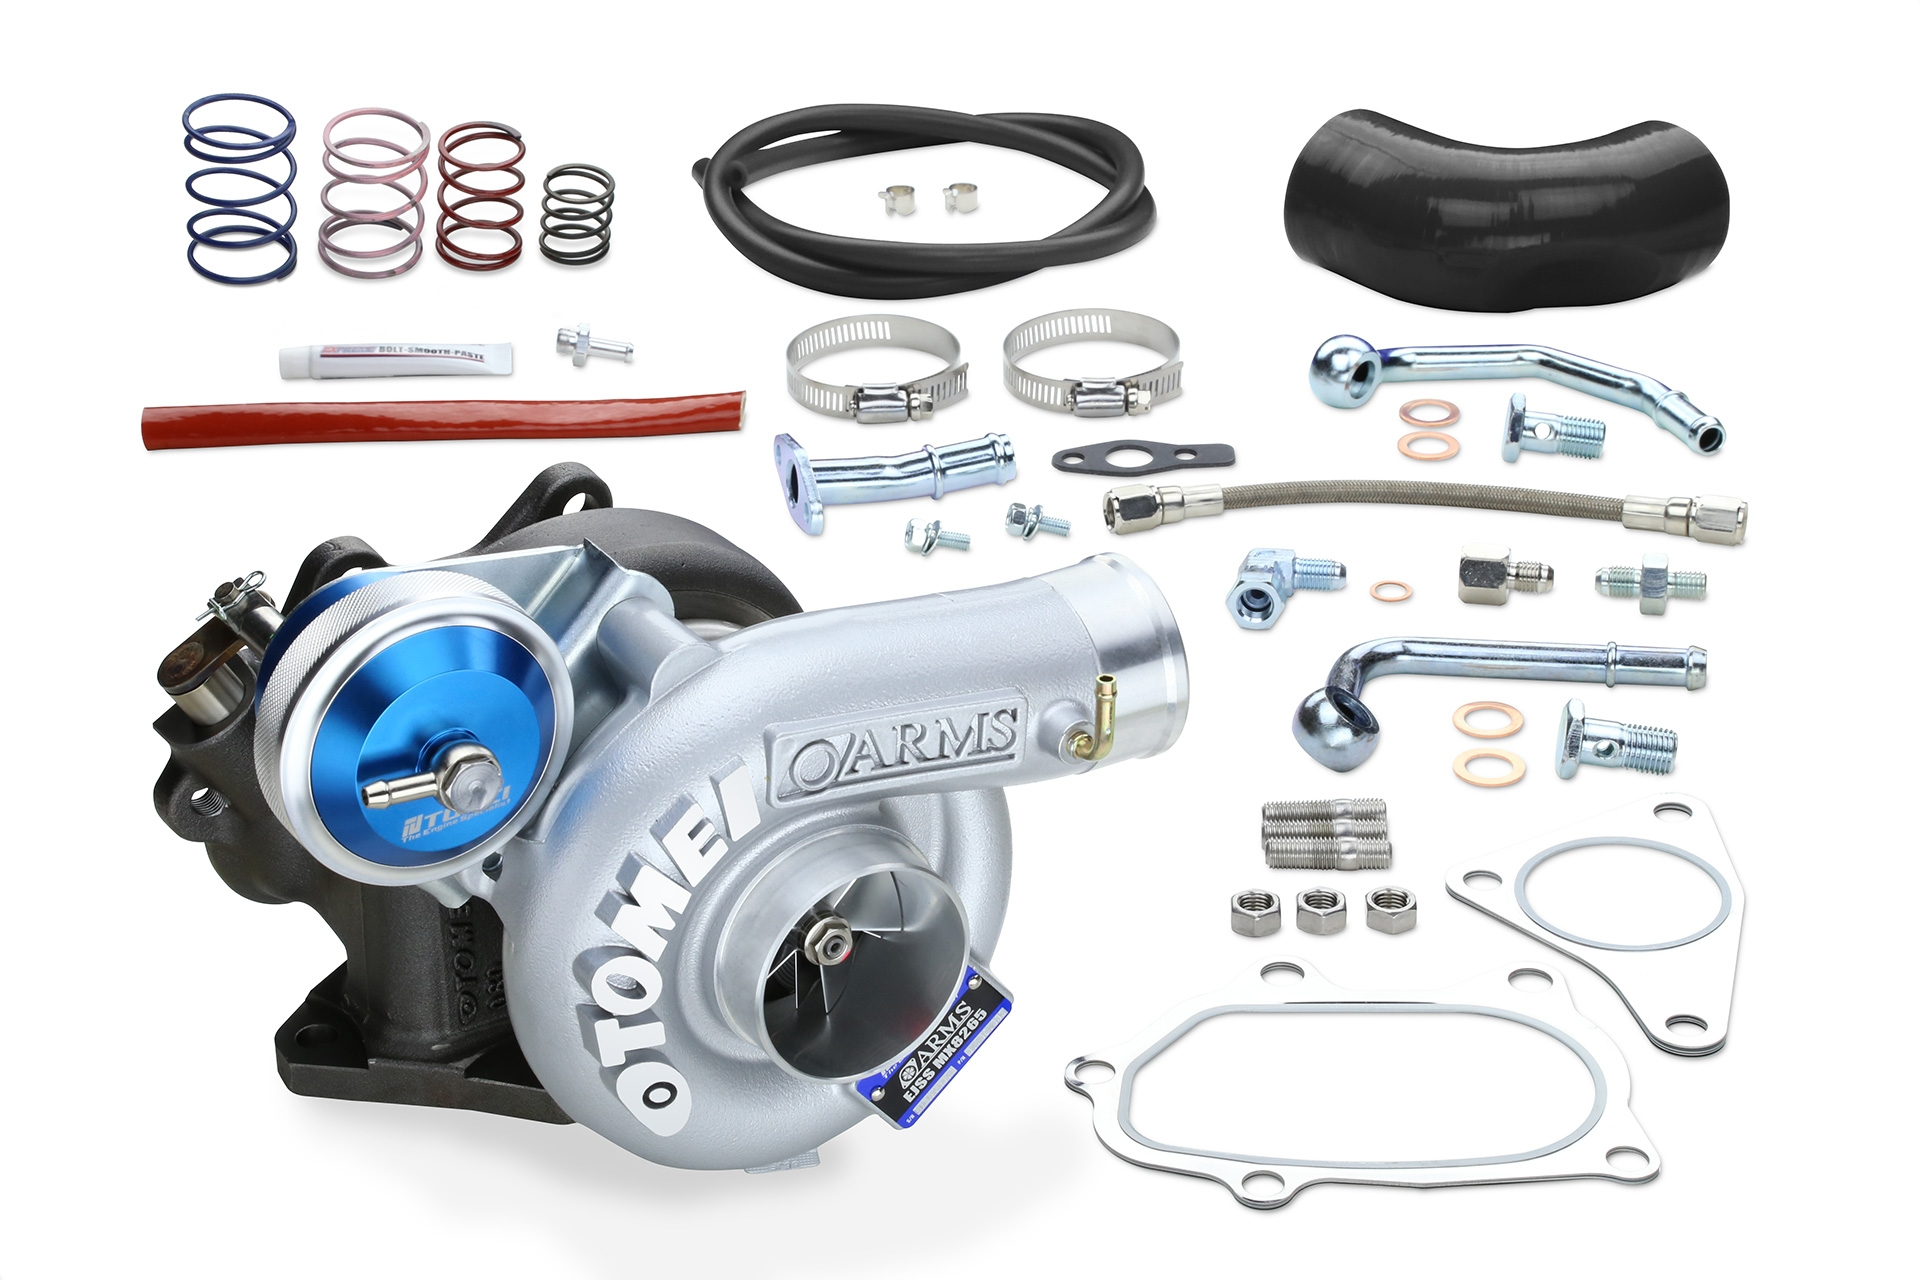 Tomei Turbocharger Kit Arms MX7960 EJ Single Scroll